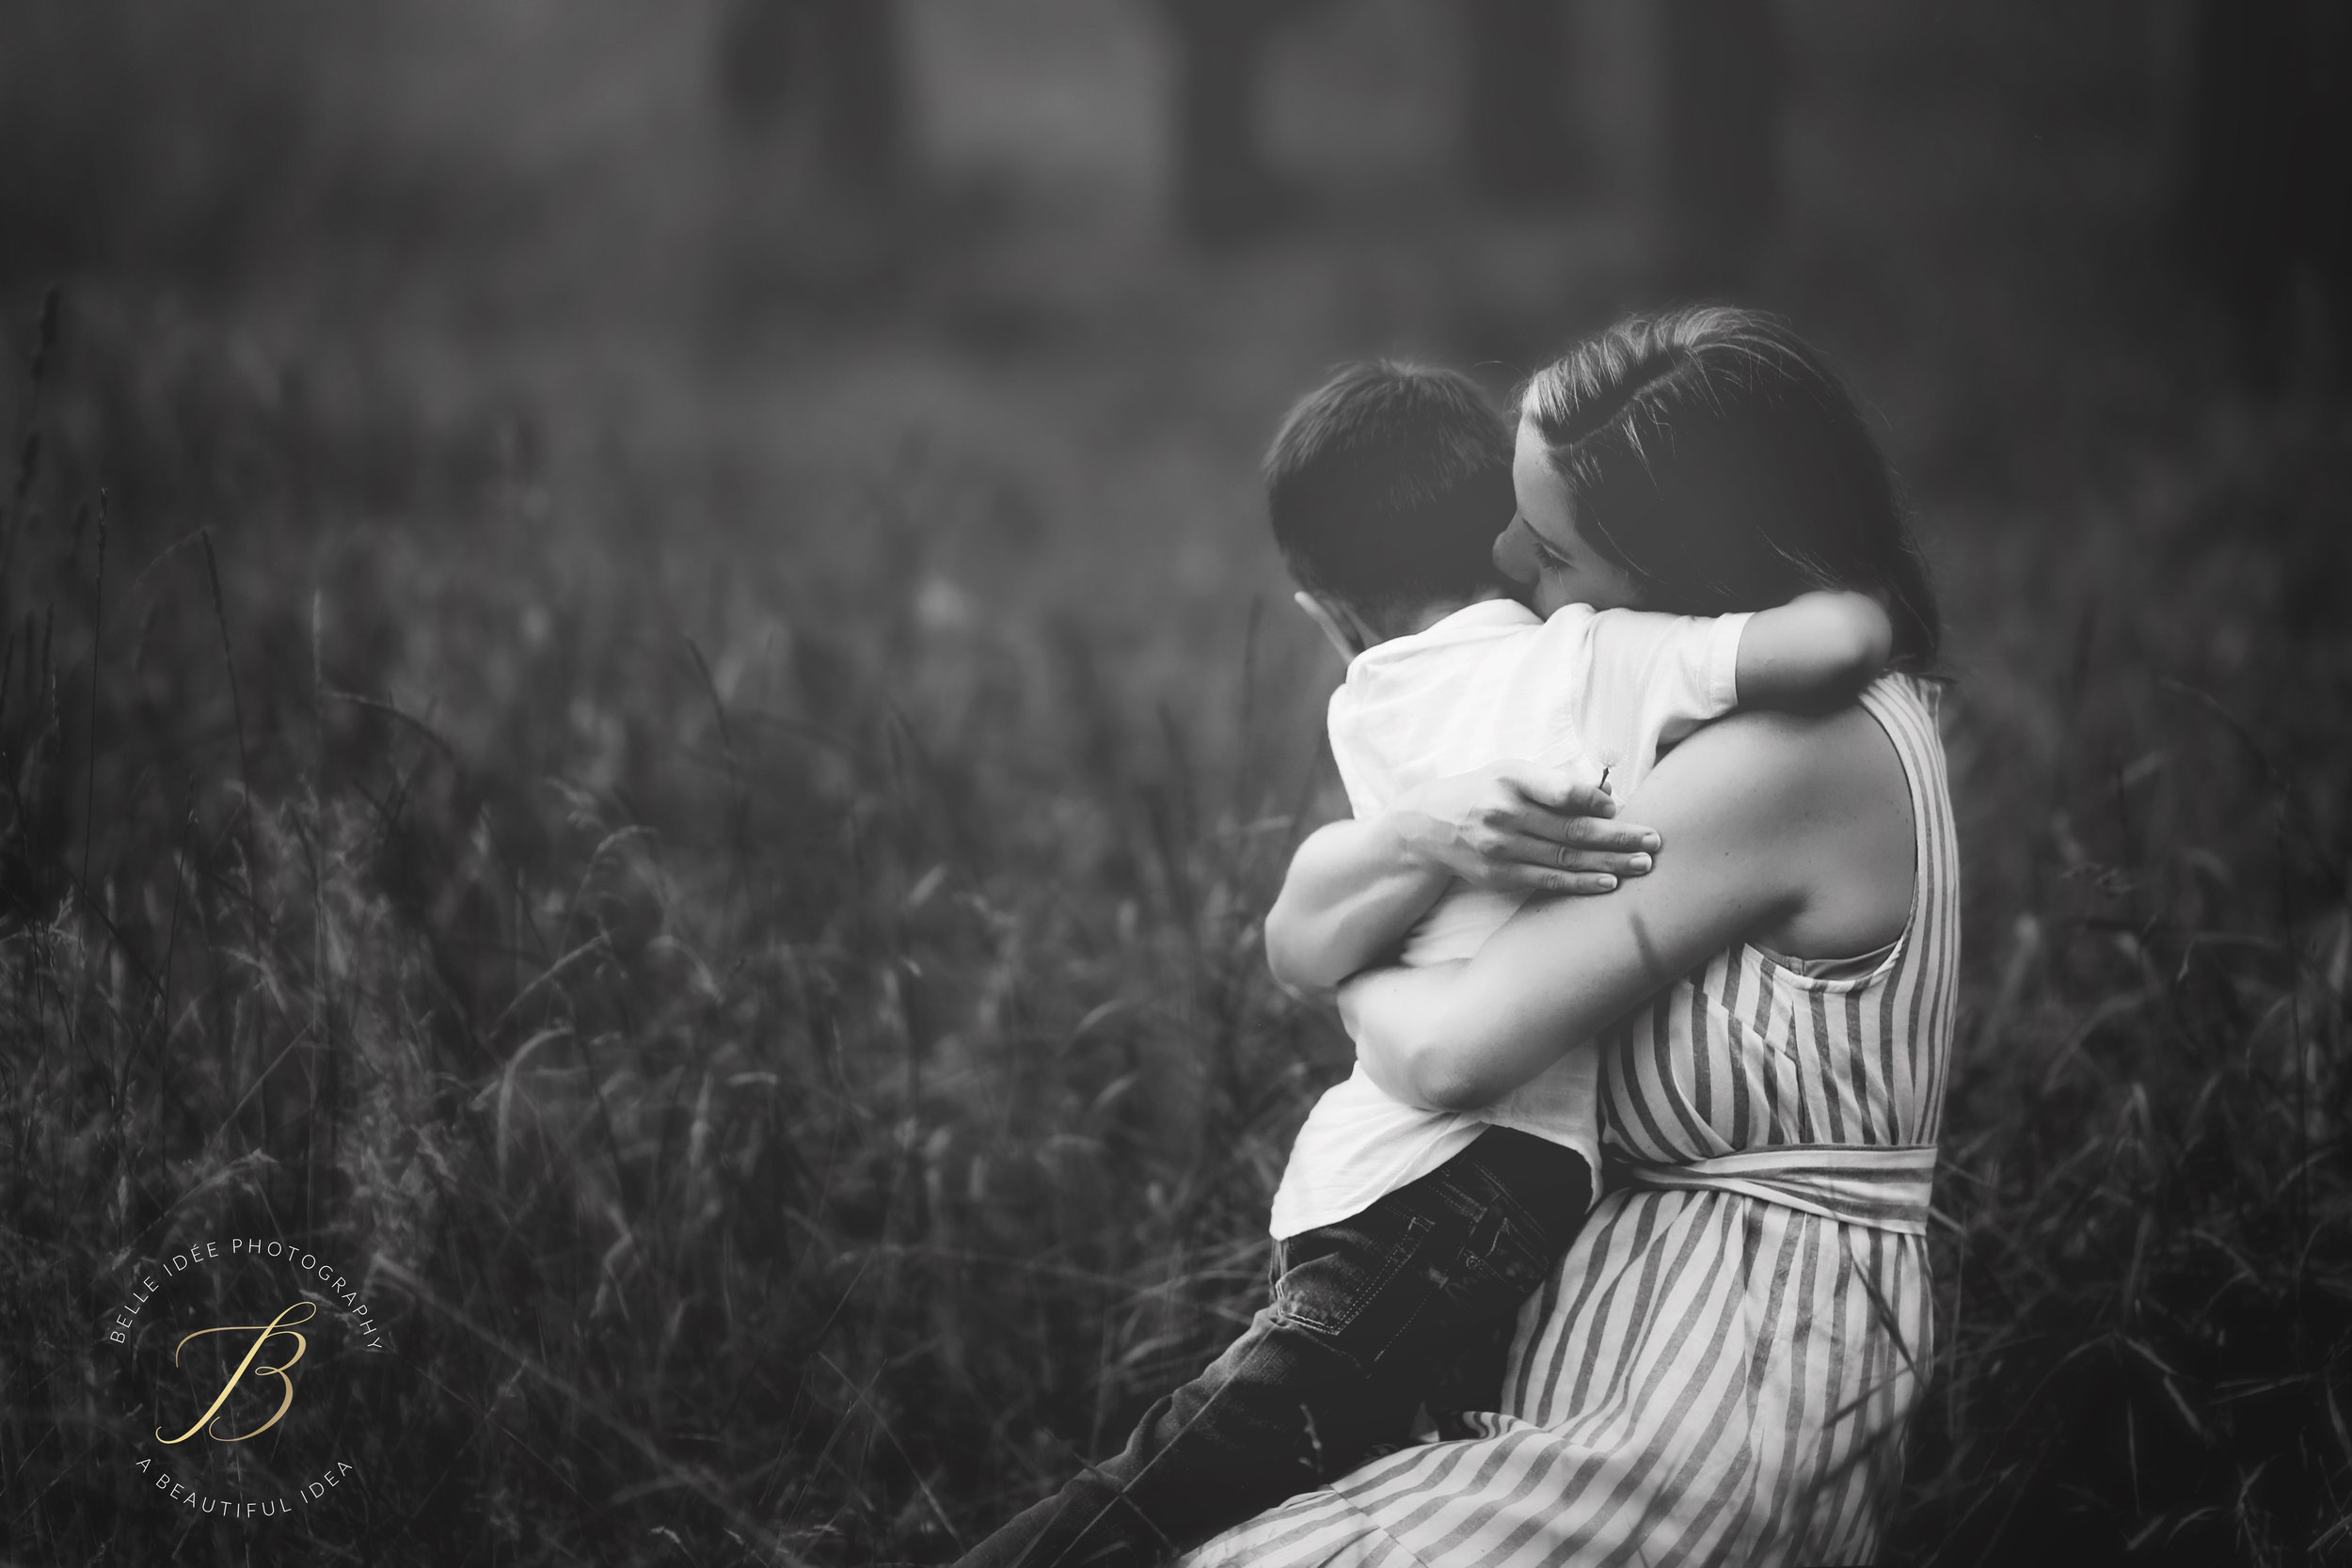 Collect moments emotional black white images from buffalo wny